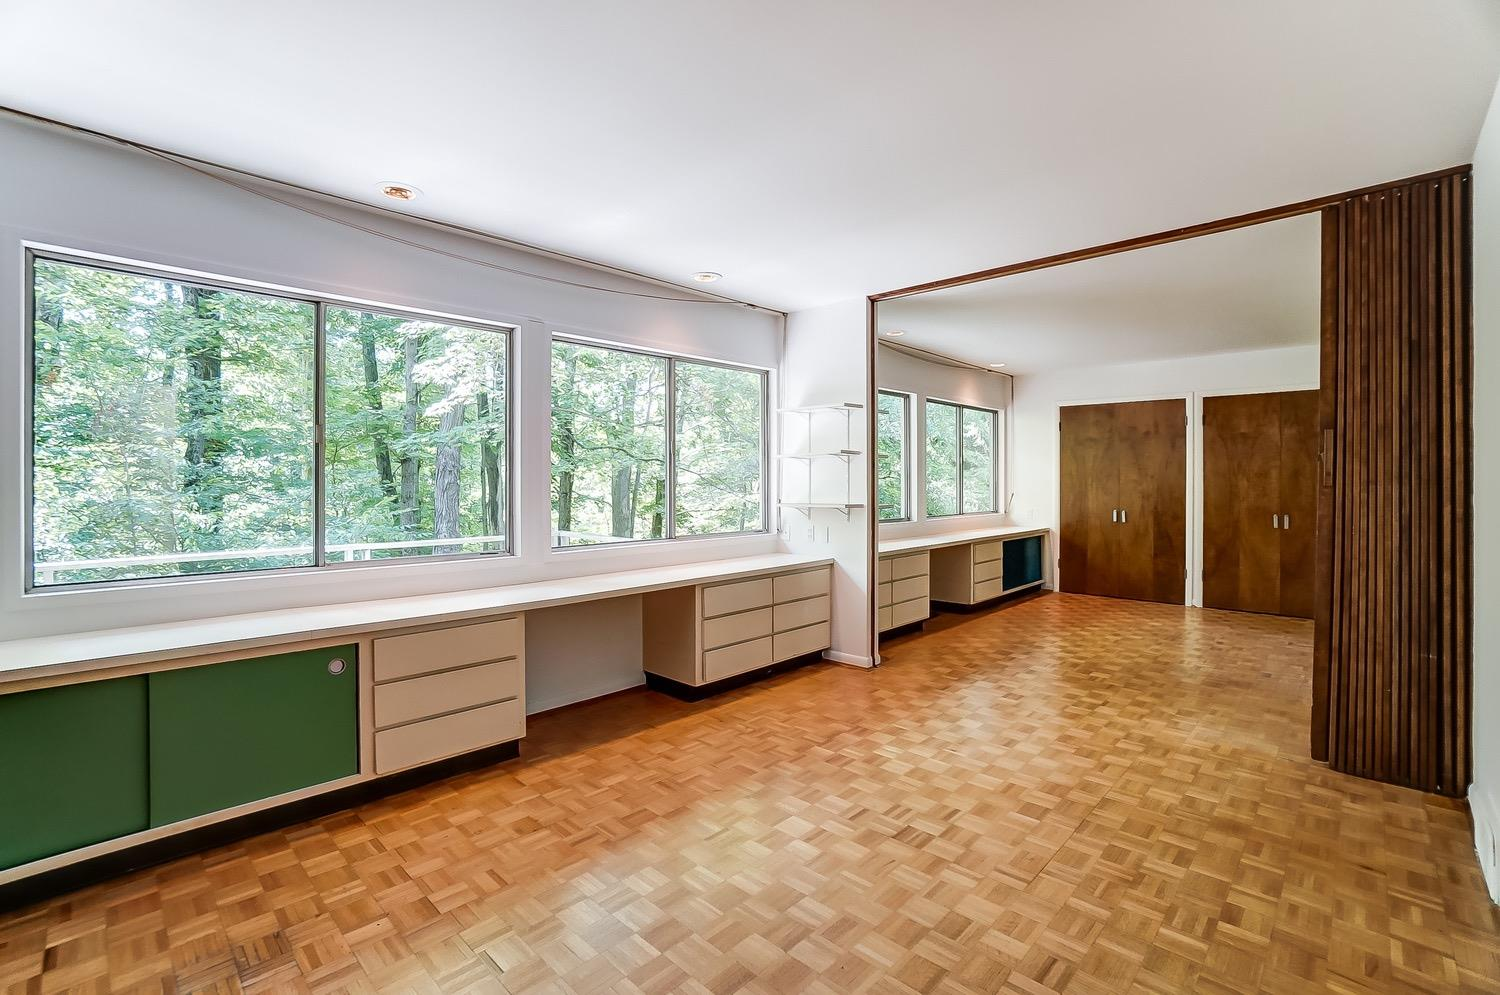 The nearly identical mirror-image bedrooms 2 and 3 are divided by an a wooden accordion sliding wall. The beautiful wood parquet flooring is found throughout the second floor (even under the primary suite bedroom and dressing areas as well as the hallways).